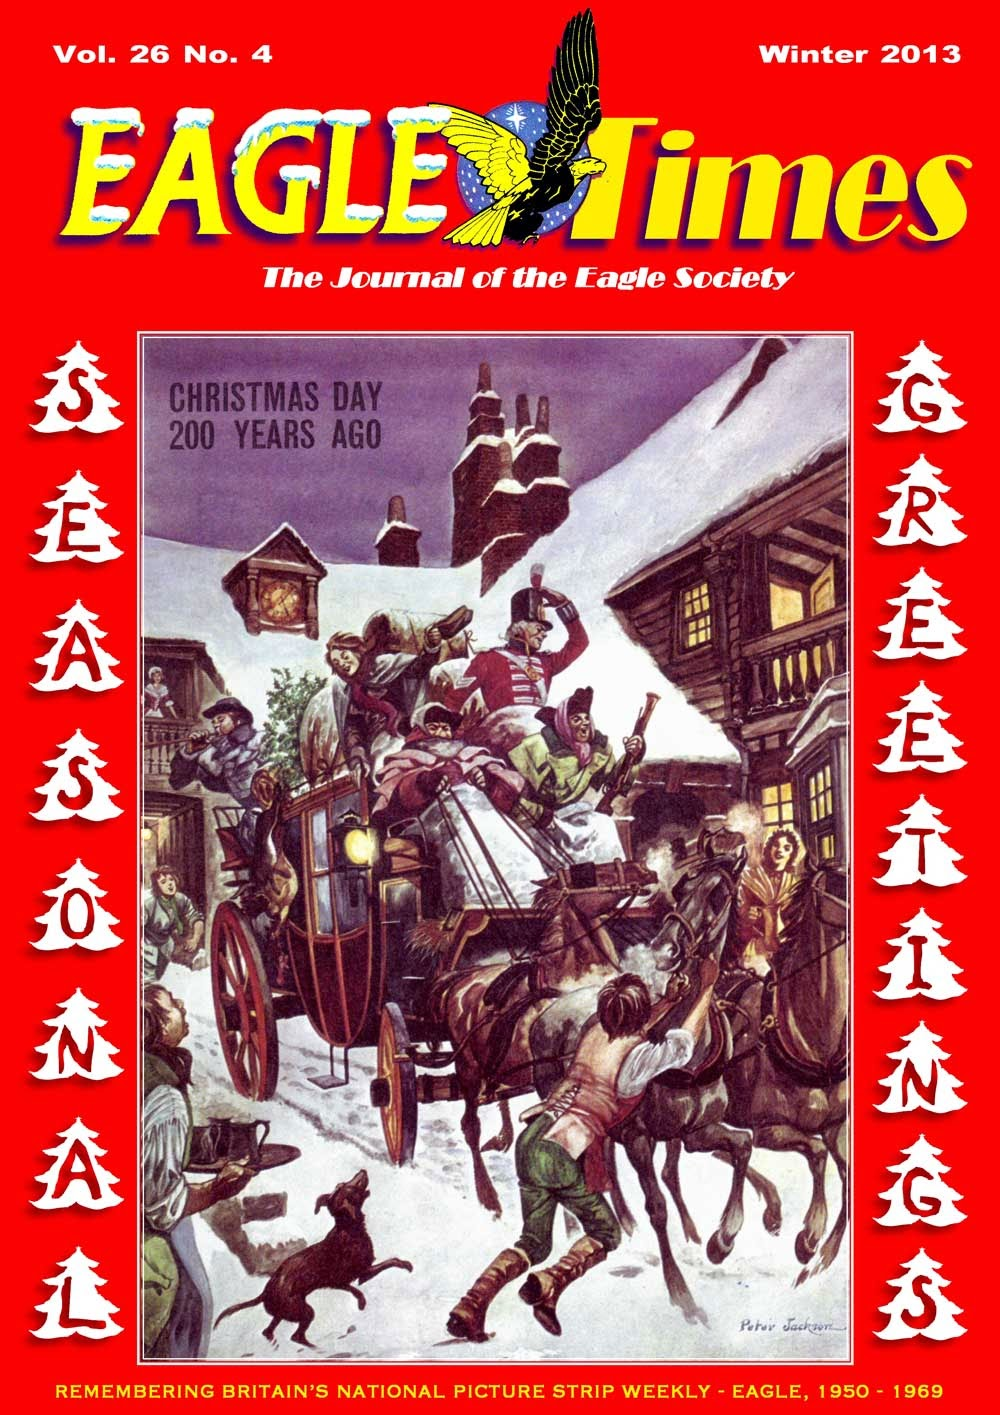 Eagle Times (Volume 26 Number Four - Cover